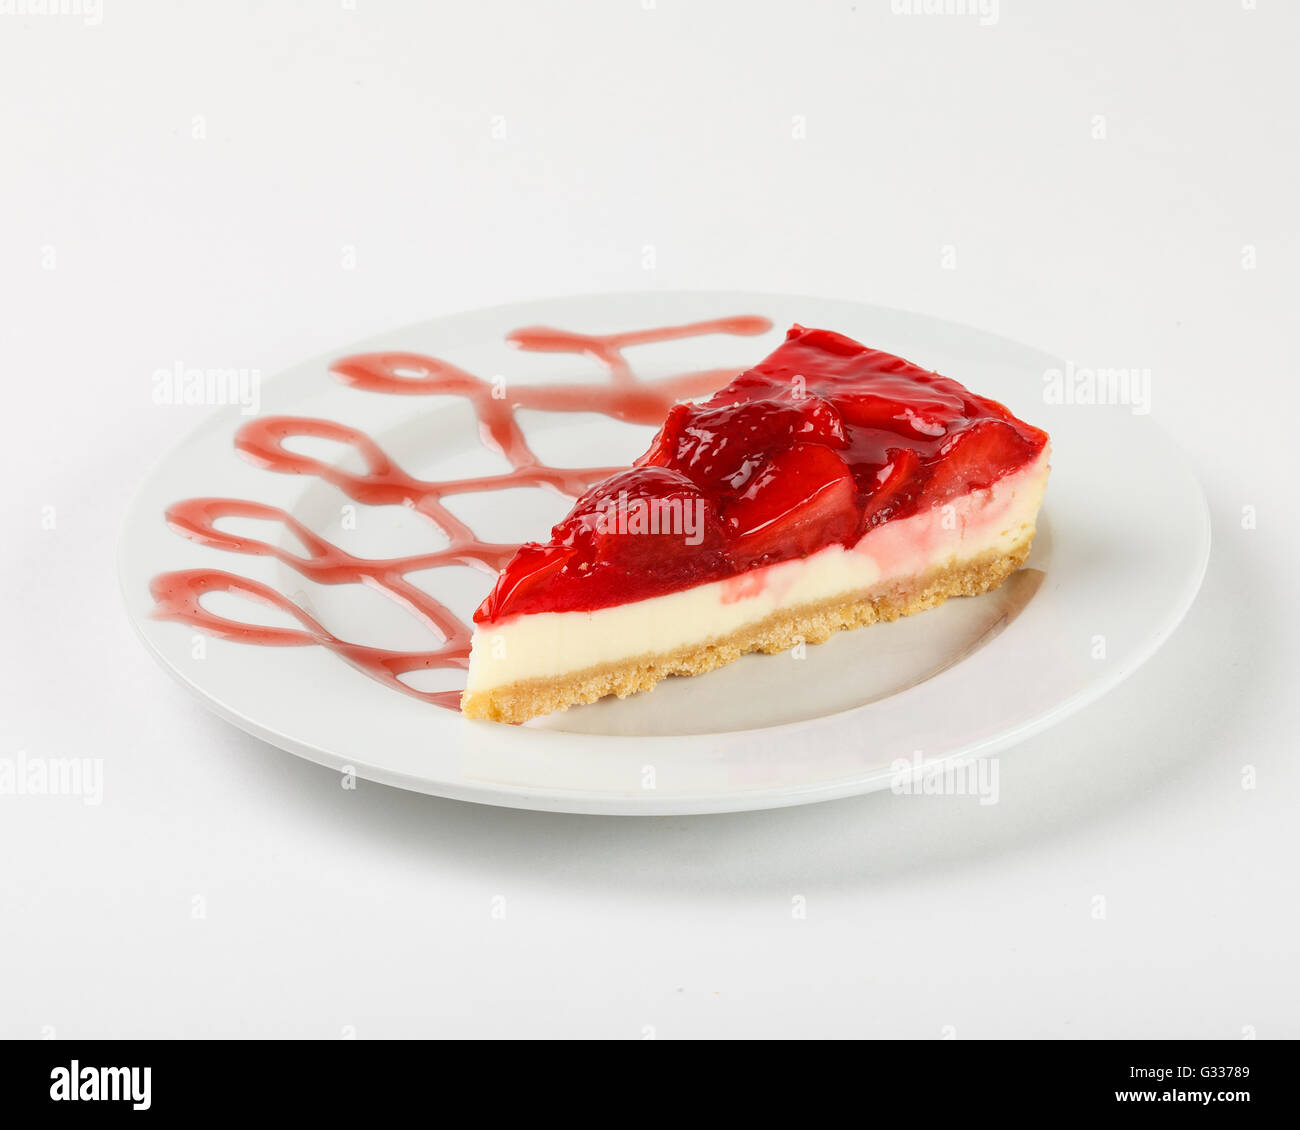 Cheesecake with strawberry jelly. Close up side view. - Stock Image